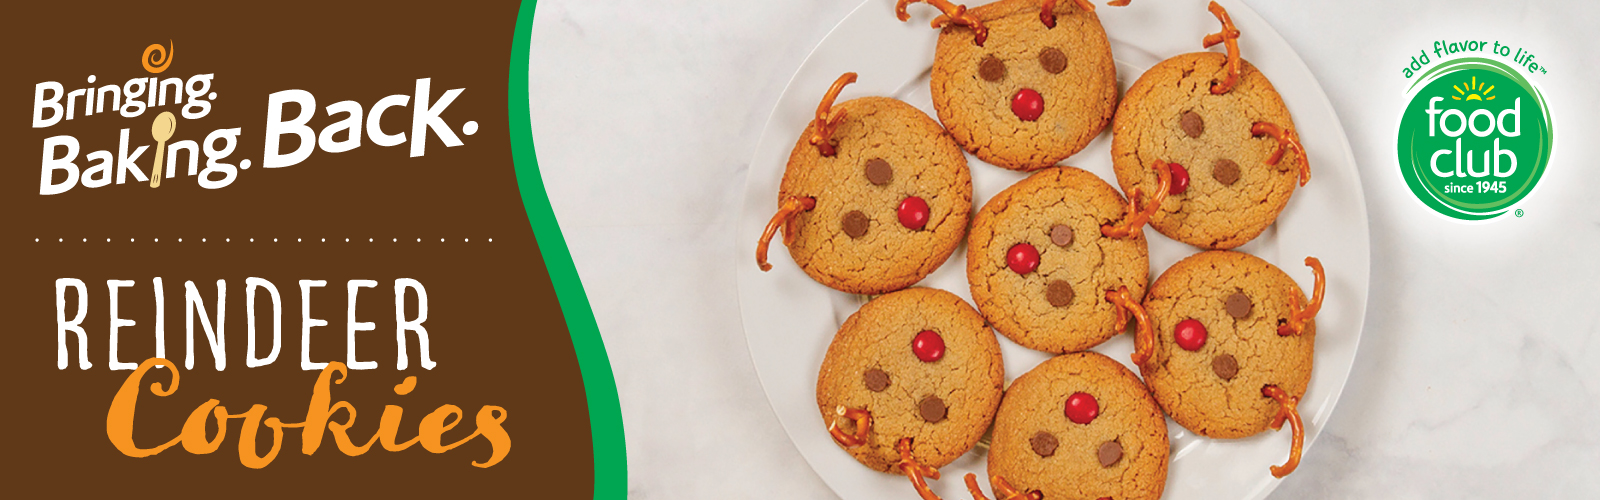 Food Club®Reindeer Cookies